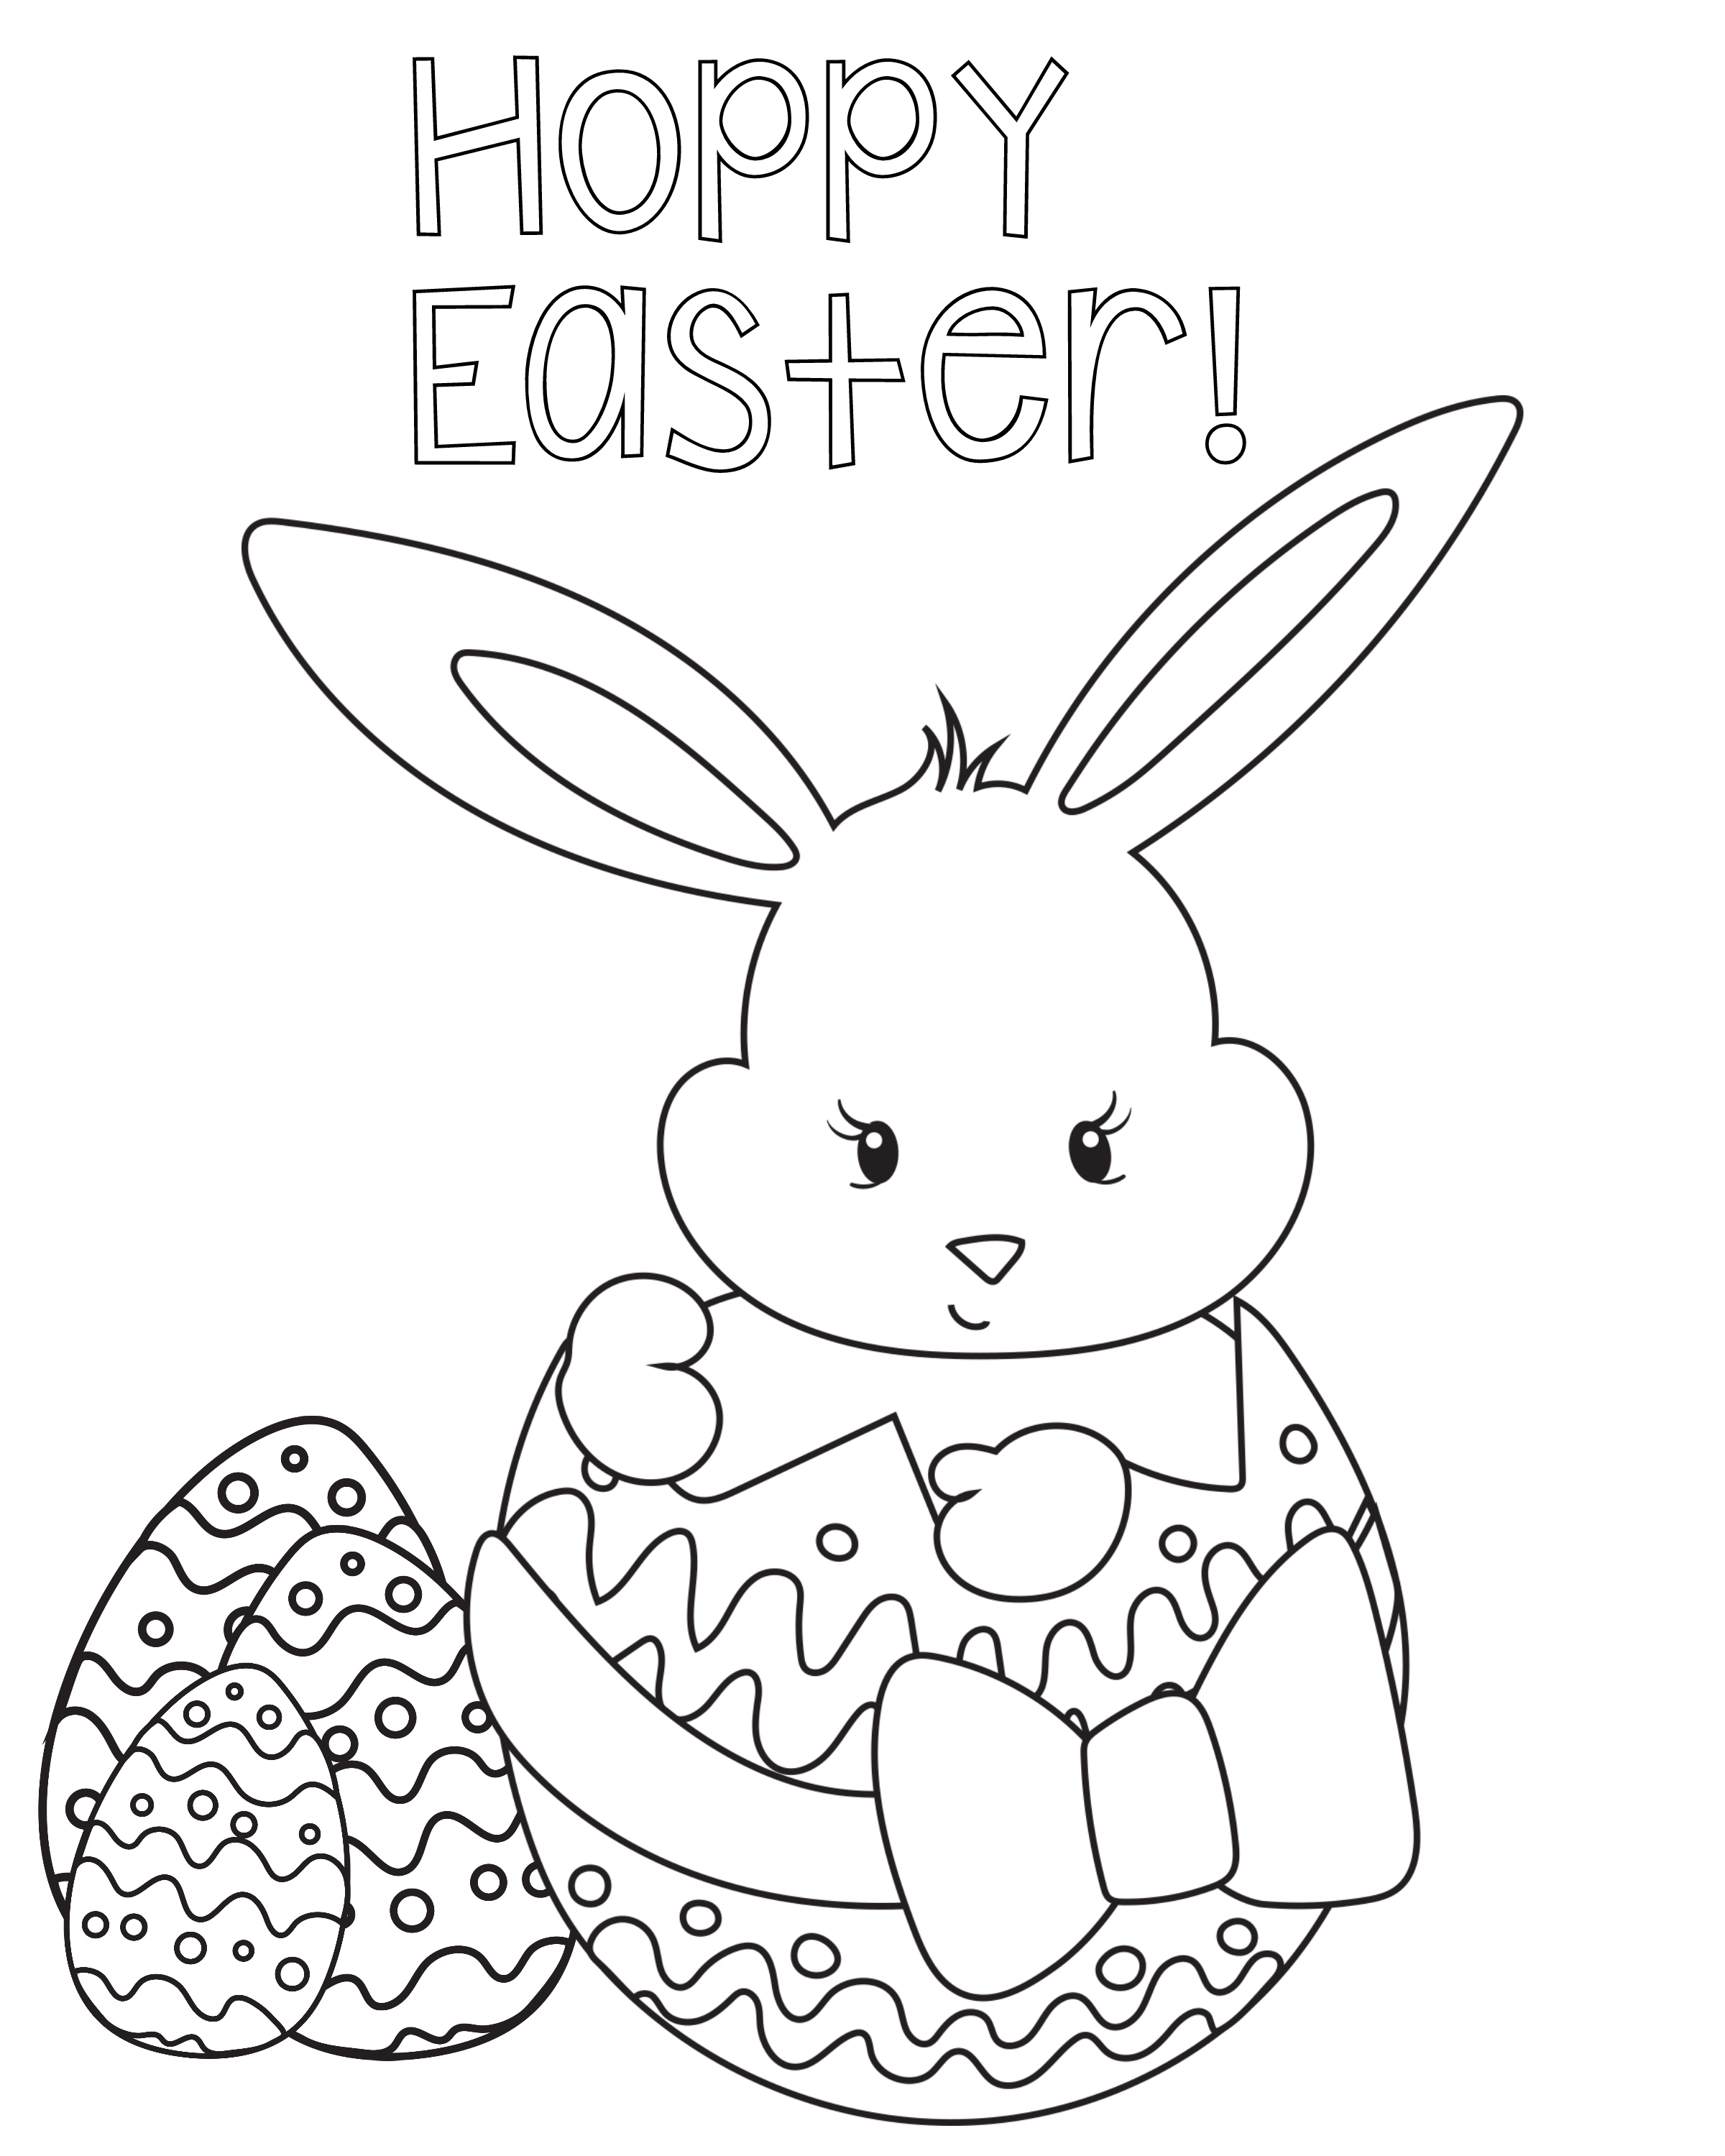 hoppy easter bunny coloring page hoppyeastercoloringpage - Free Coloring Pages Of Easter